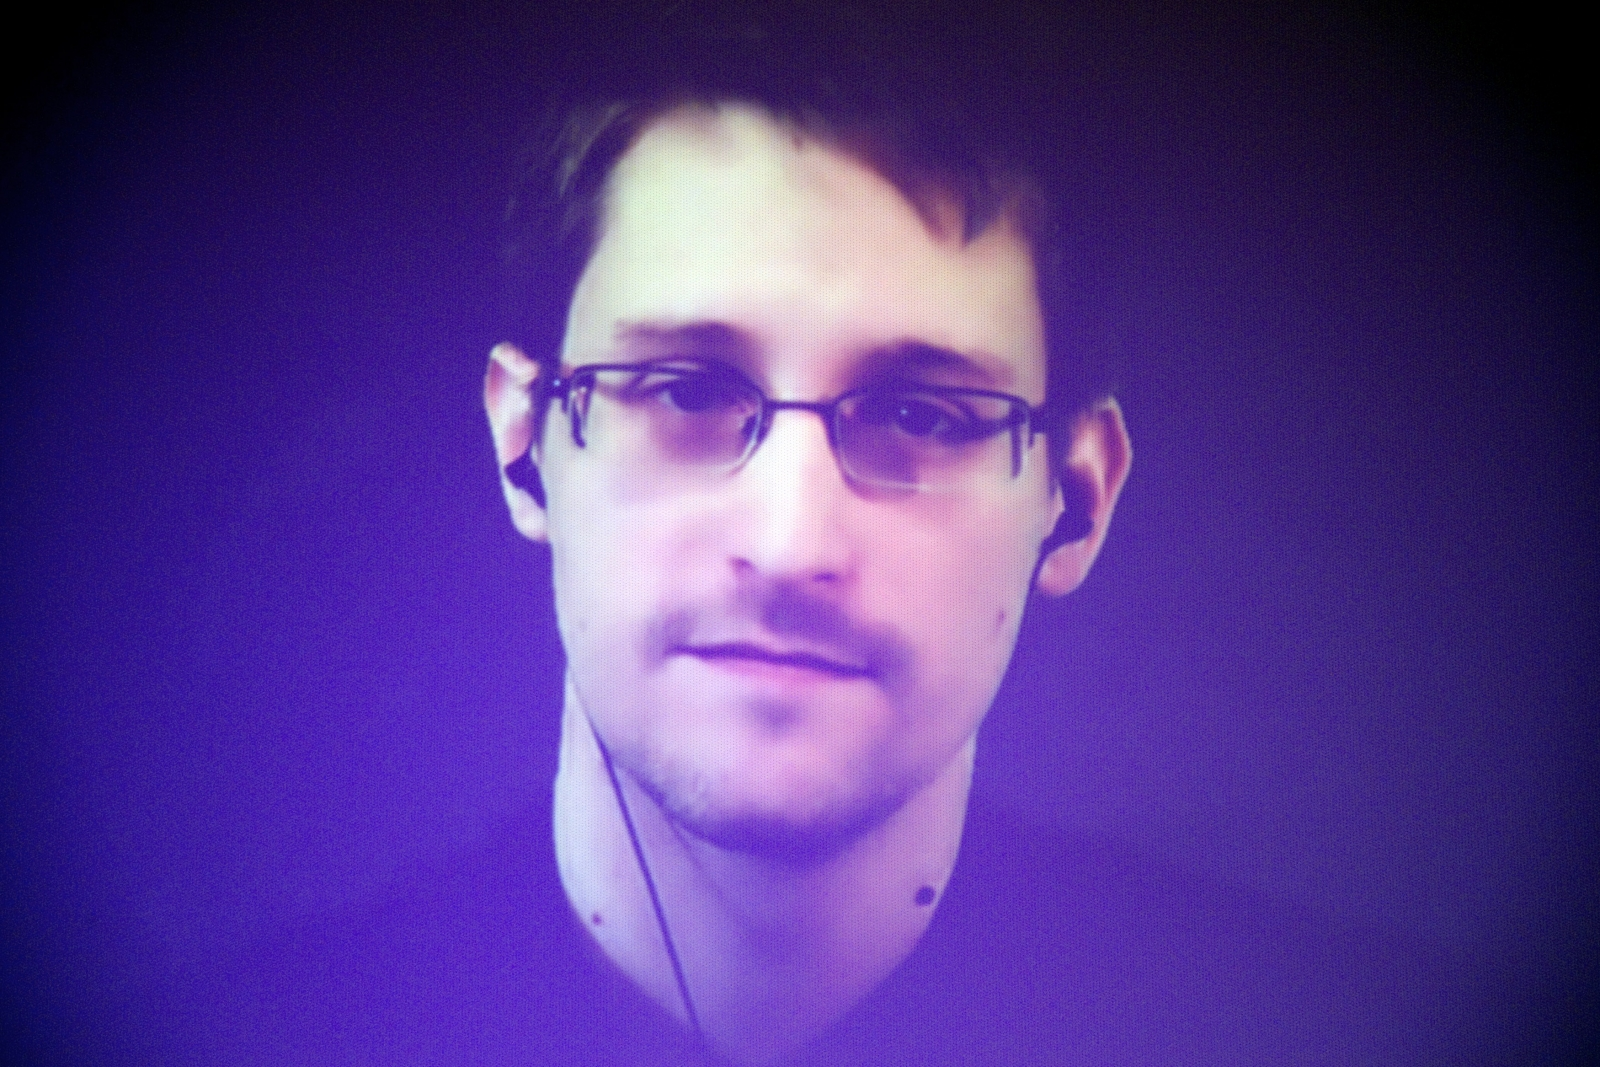 Edward Snowden GHCQ phone hack